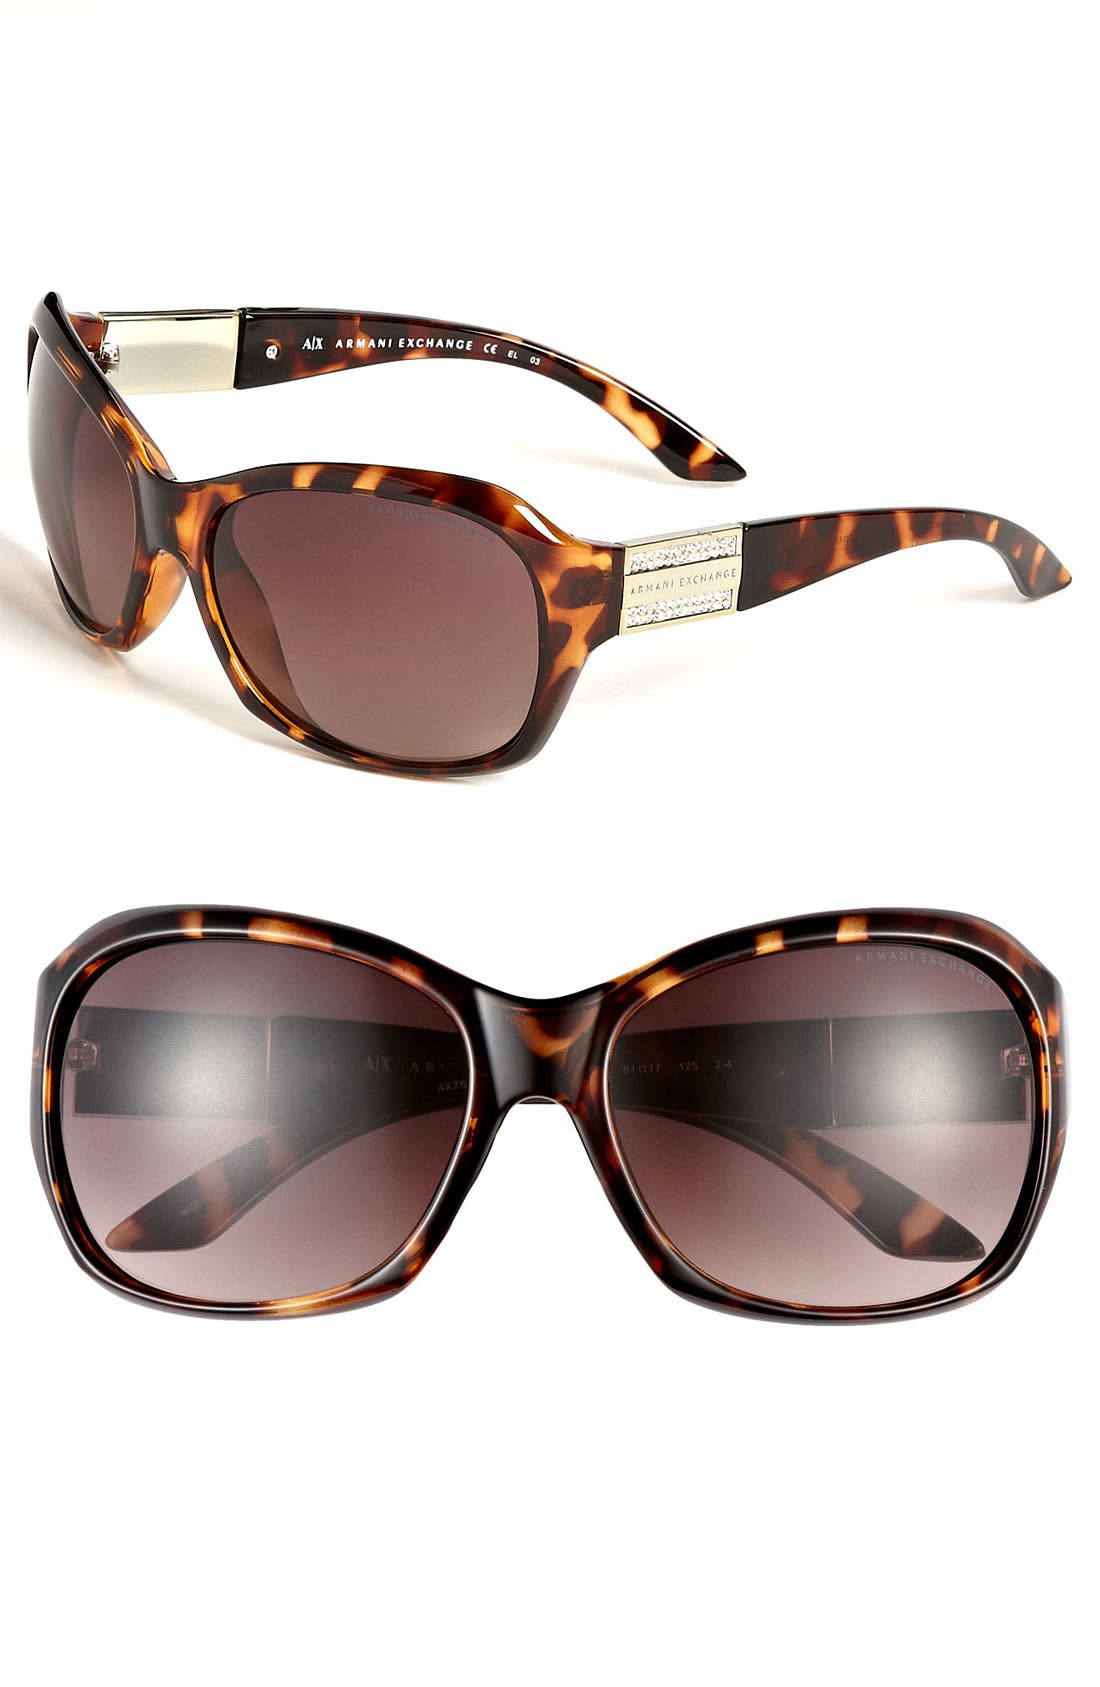 Main Image - AX Armani Exchange Sunglasses